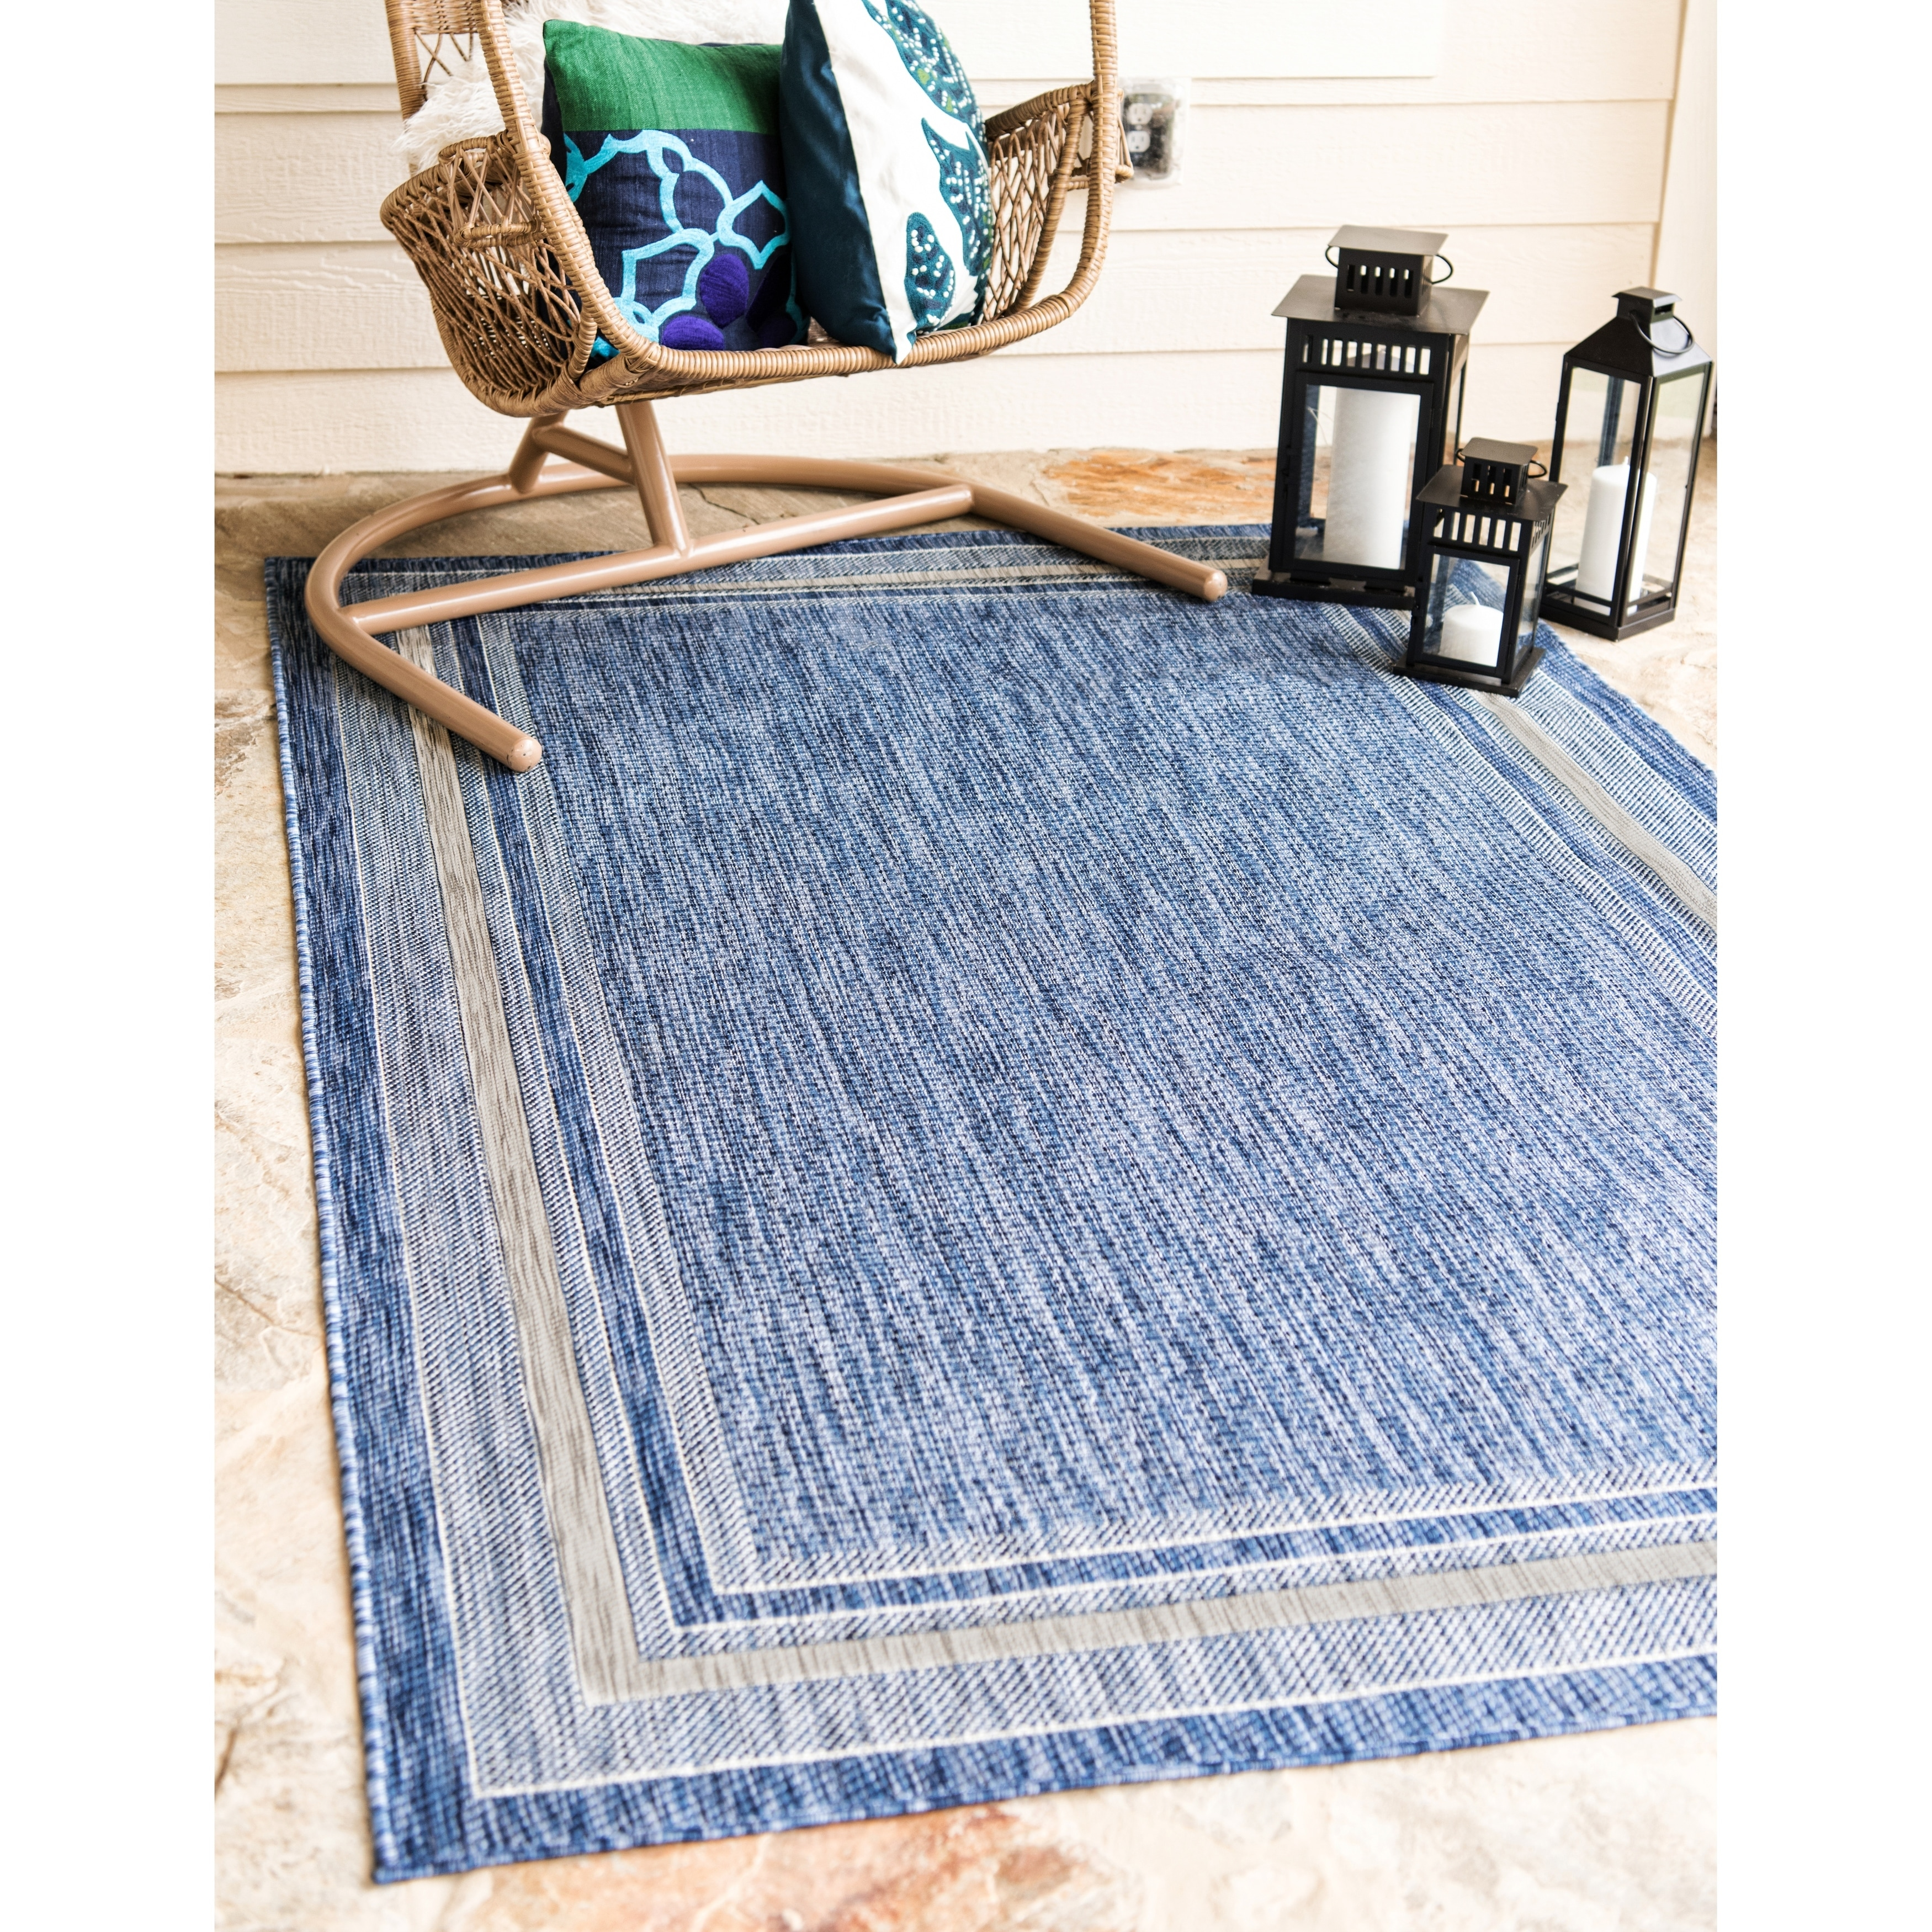 Unique Loom Outdoor Soft Border Rug